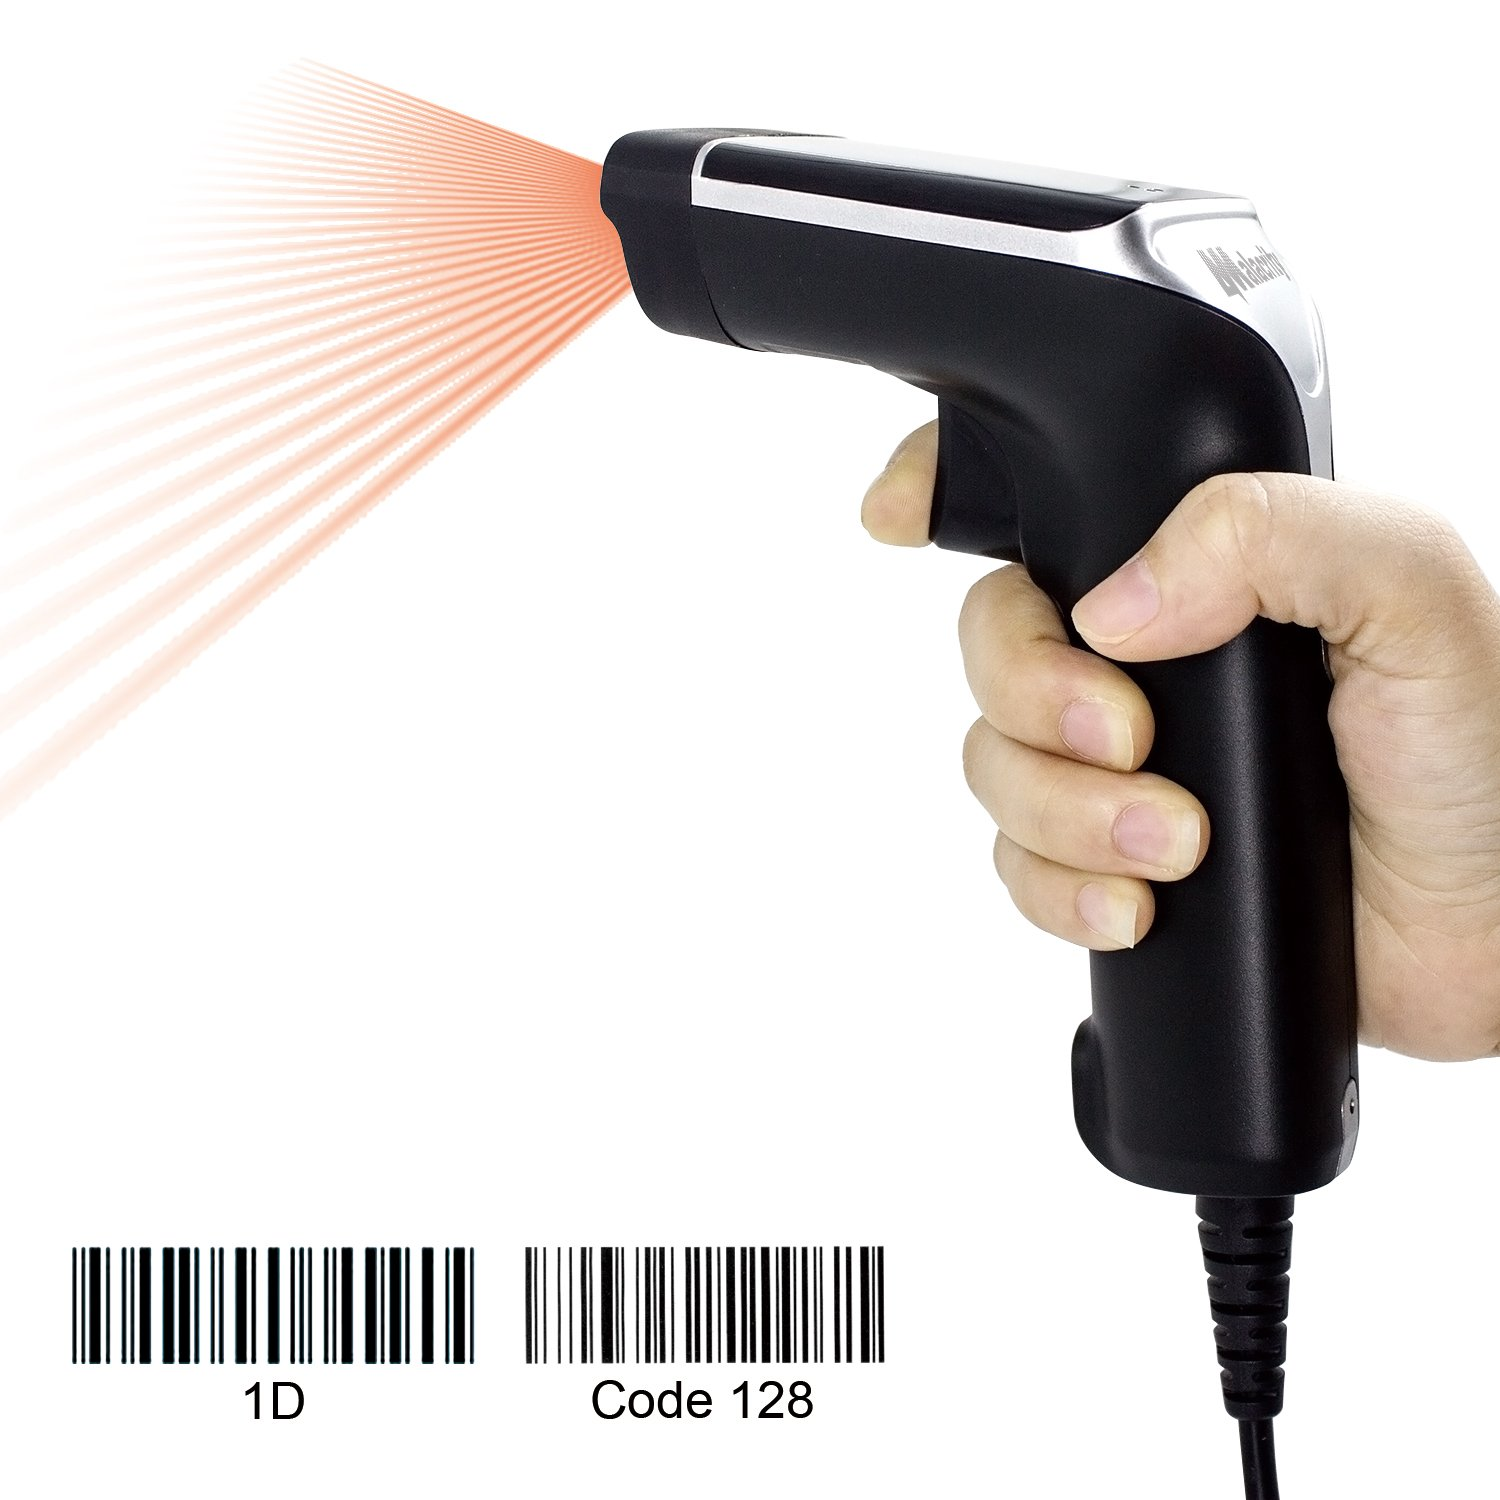 Lector Cod Barras  : Alacrity Wired Laser Barcode Scanner...